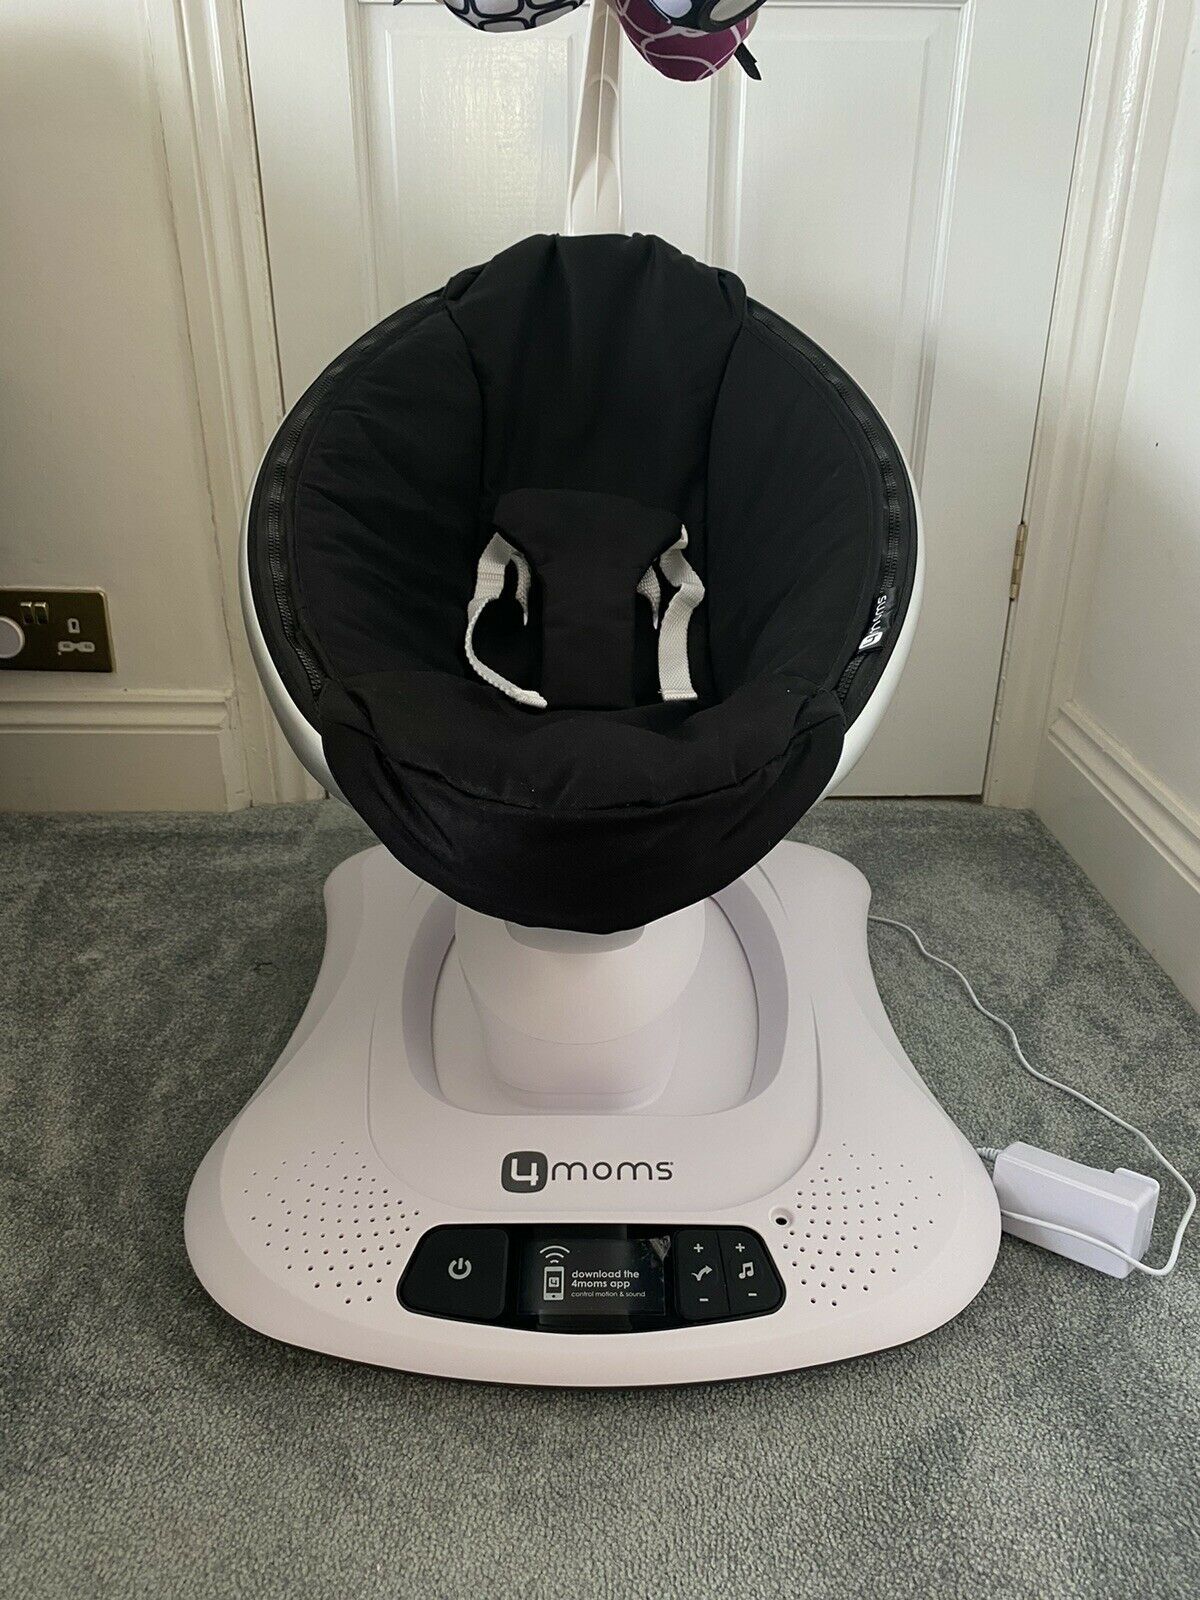 4moms mamaroo available in brand new condition